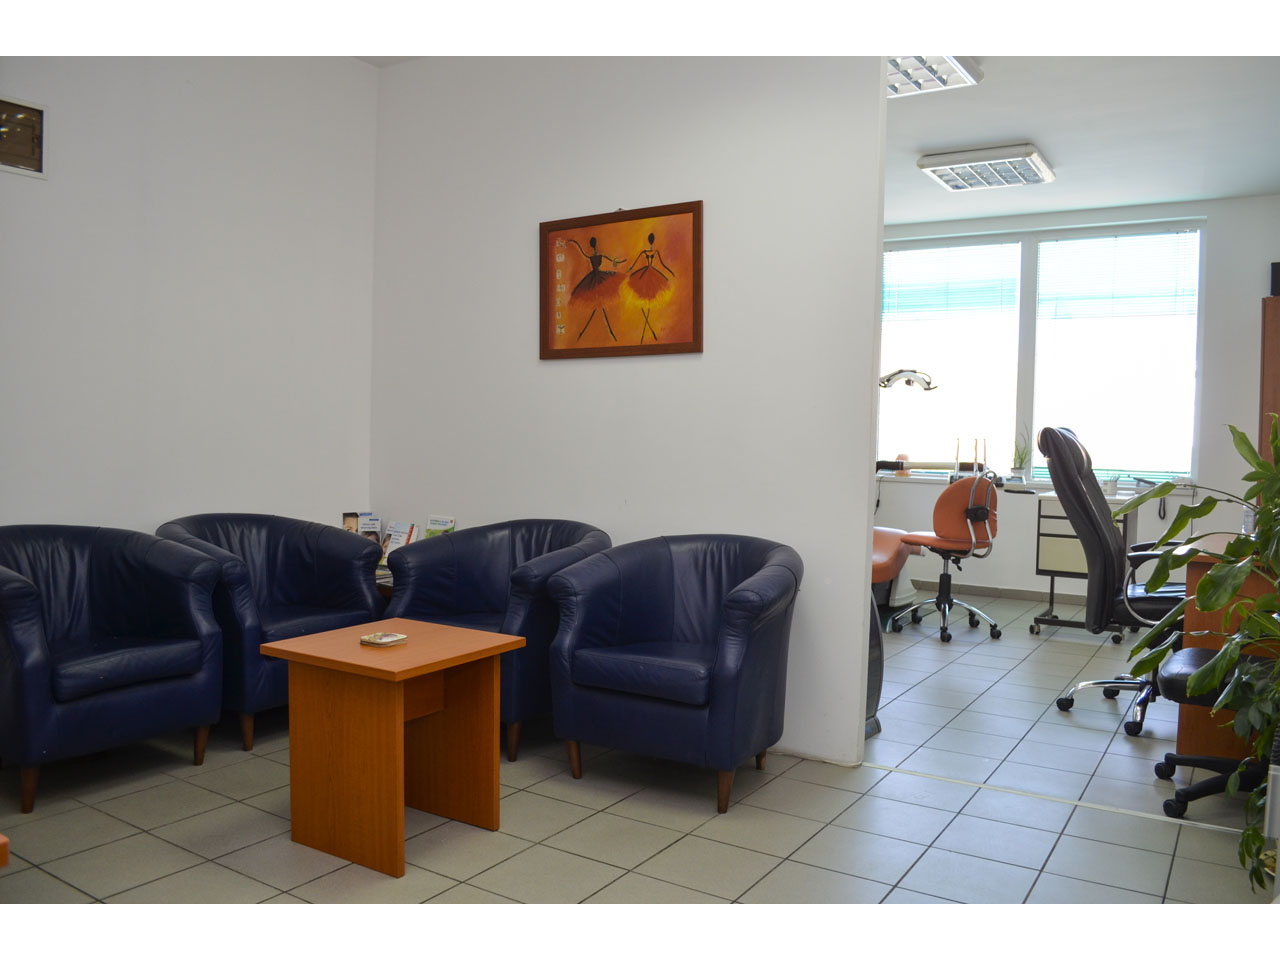 STOMATOLOŠKA ORDINACIJA NAVONA DENT Dental surgery Beograd